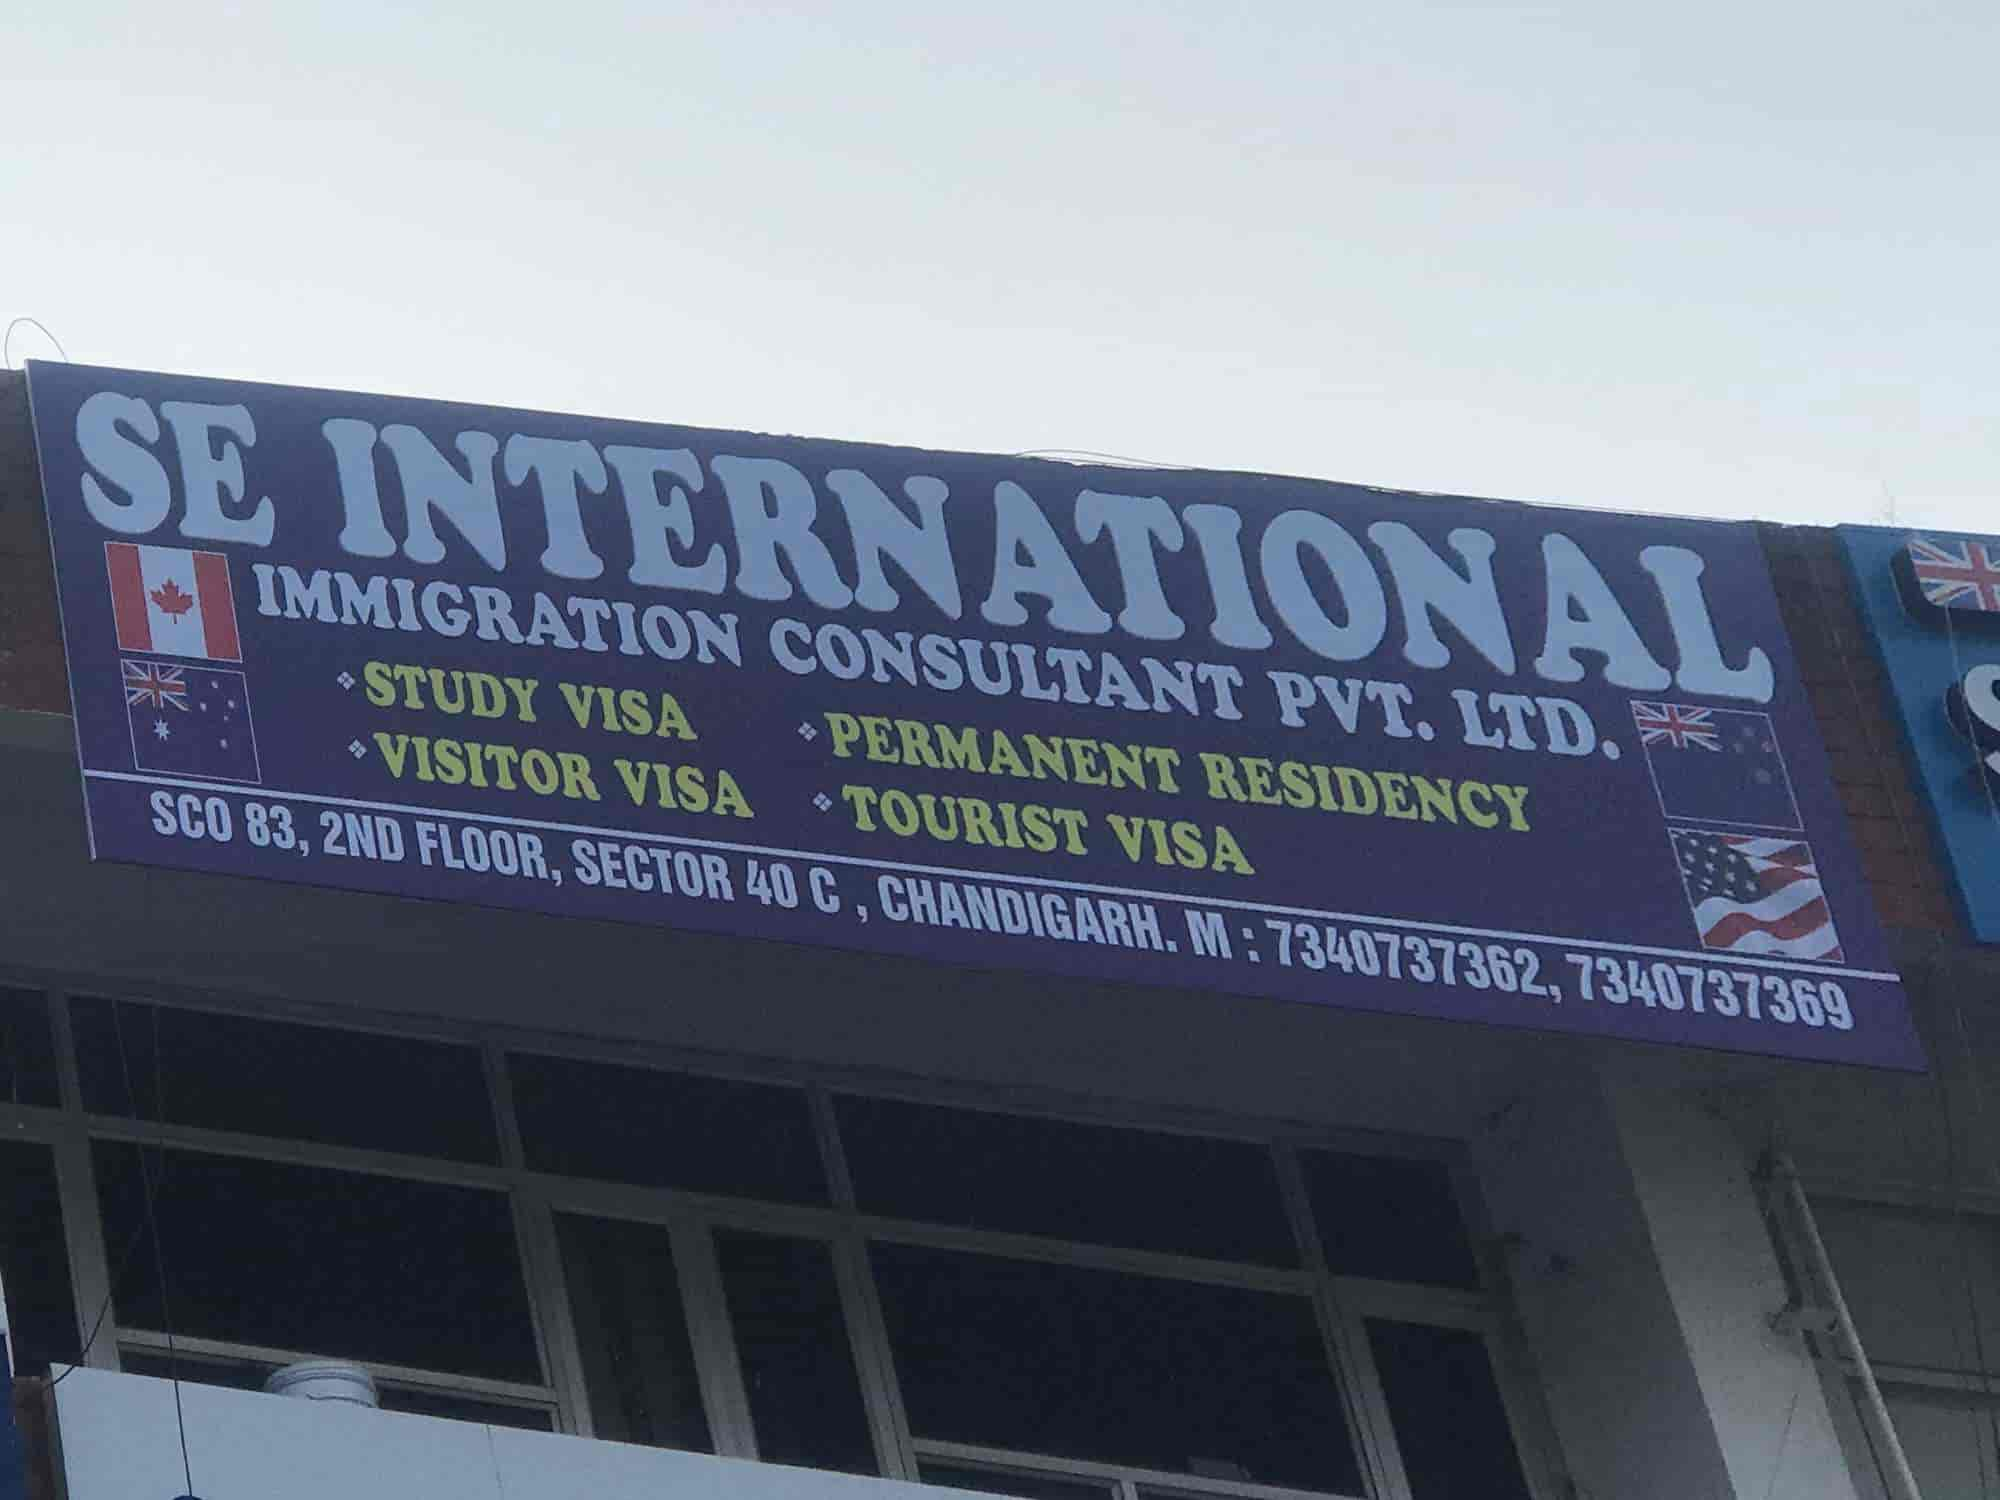 Se International Immigration Consultant Pvt Ltd, Near Canra Bank - Immigration  Consultants in Chandigarh - Justdial